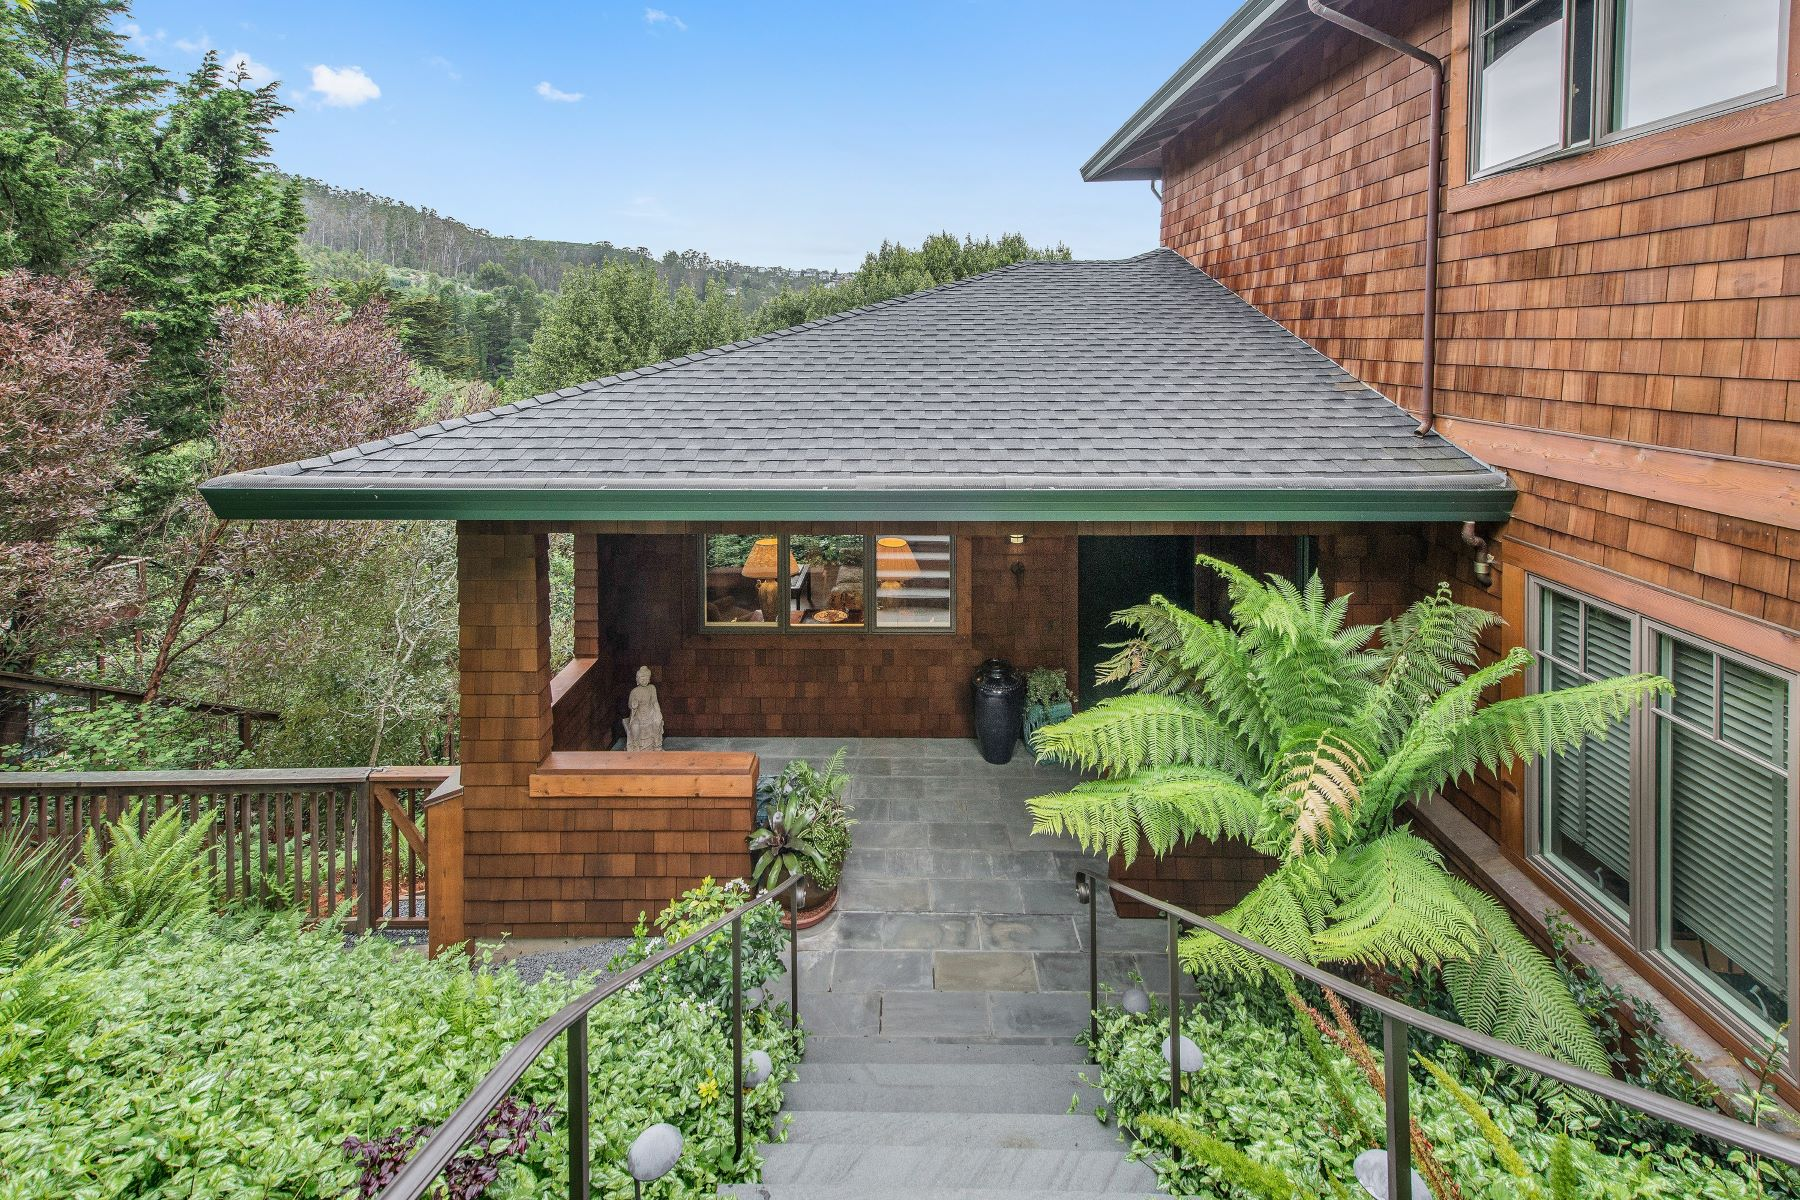 Single Family Home for Sale at Private and Tranquil Contemporary Home 699 Forest Way Tiburon, California, 94920 United States